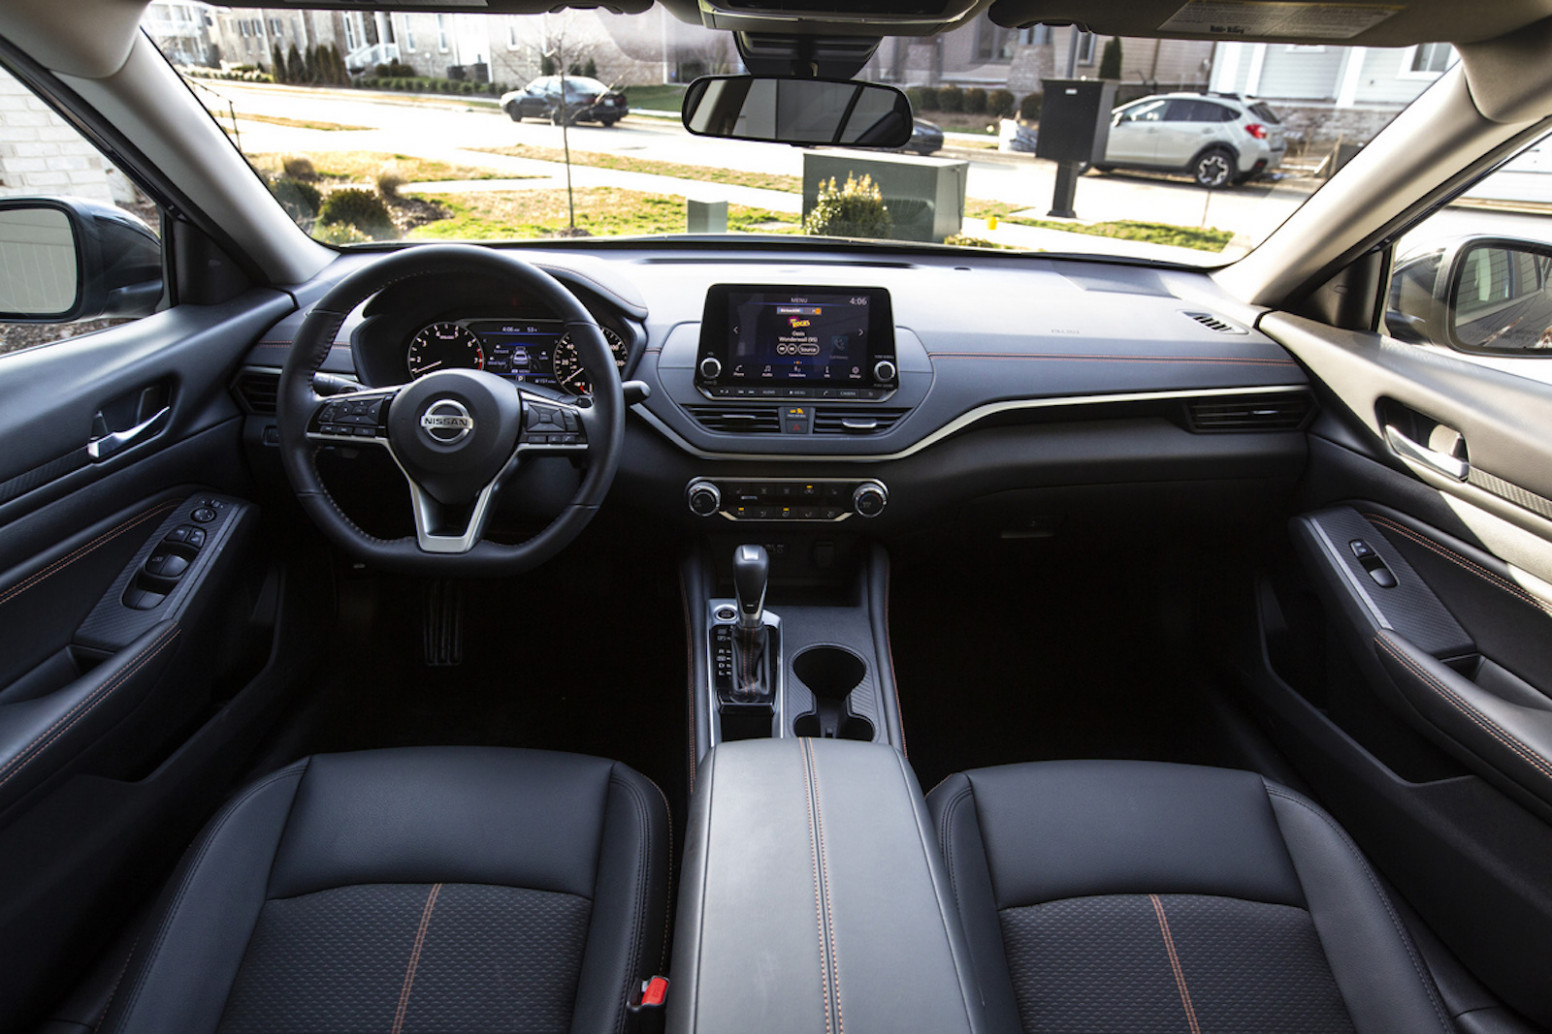 Redesign and Concept 2022 Nissan Altima Interior